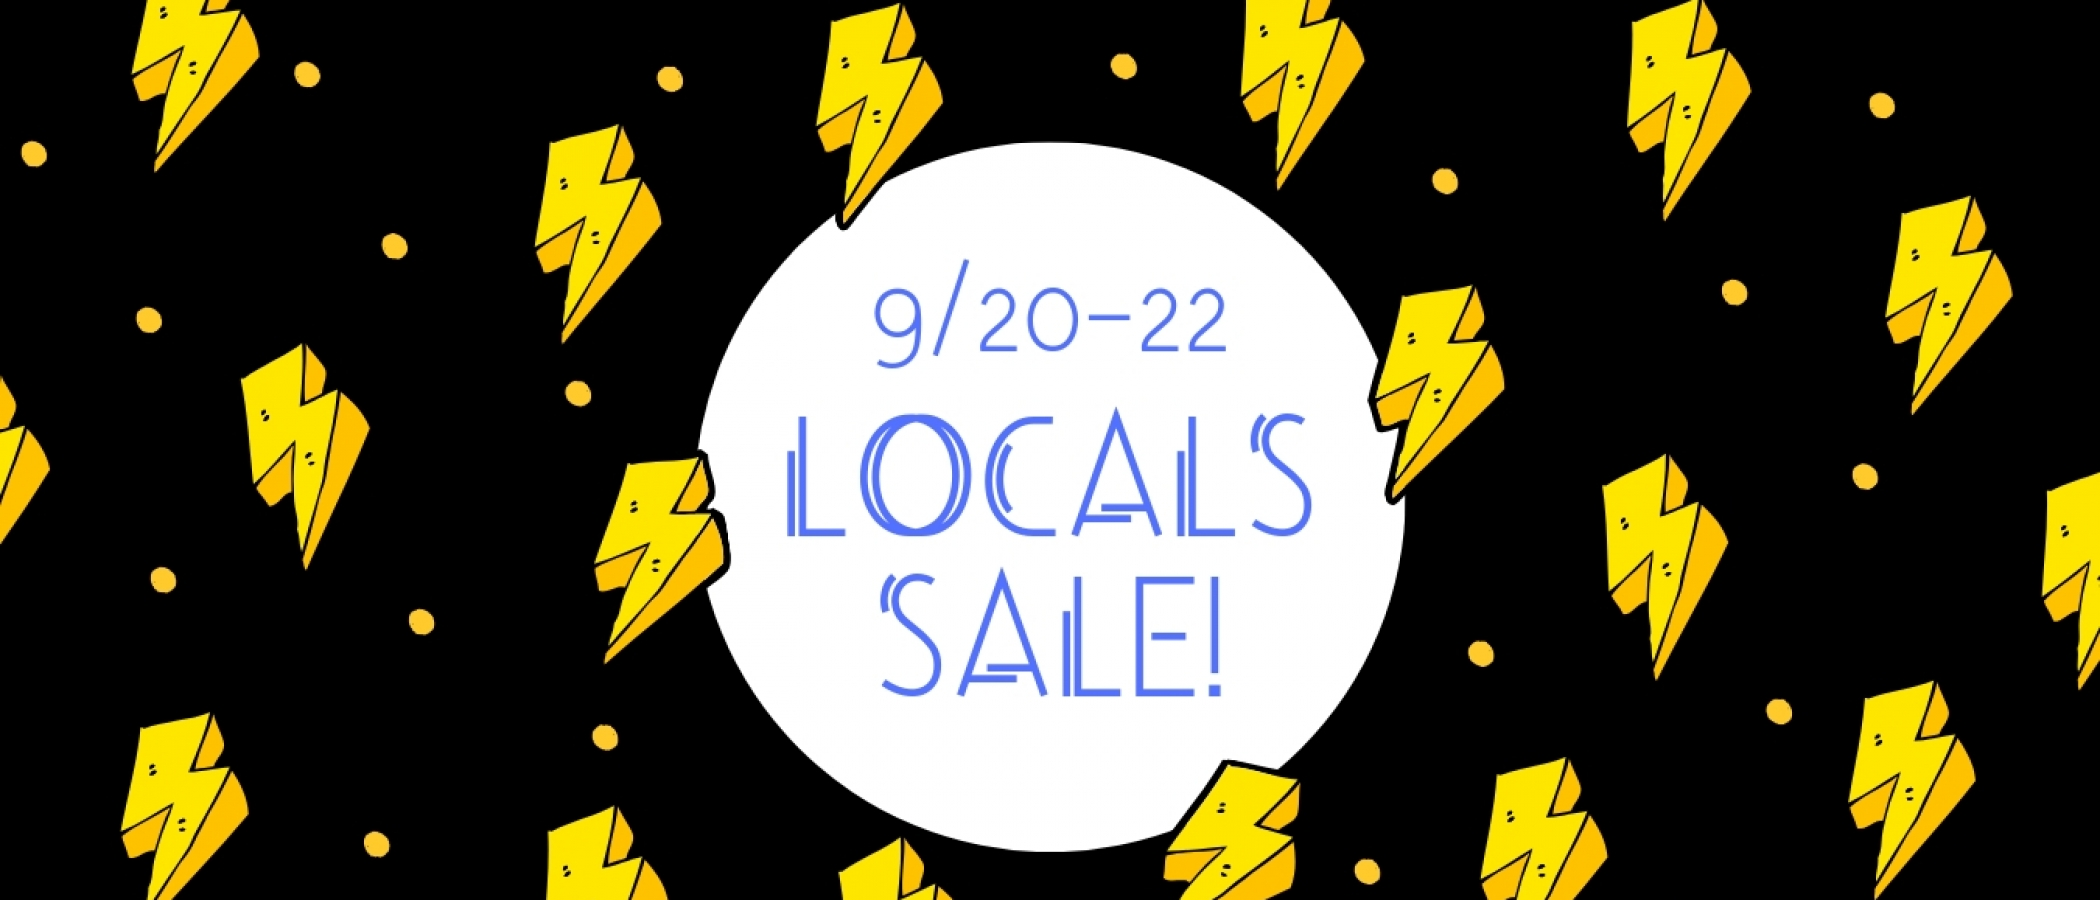 Copy of Copy of LOCALS SALE!